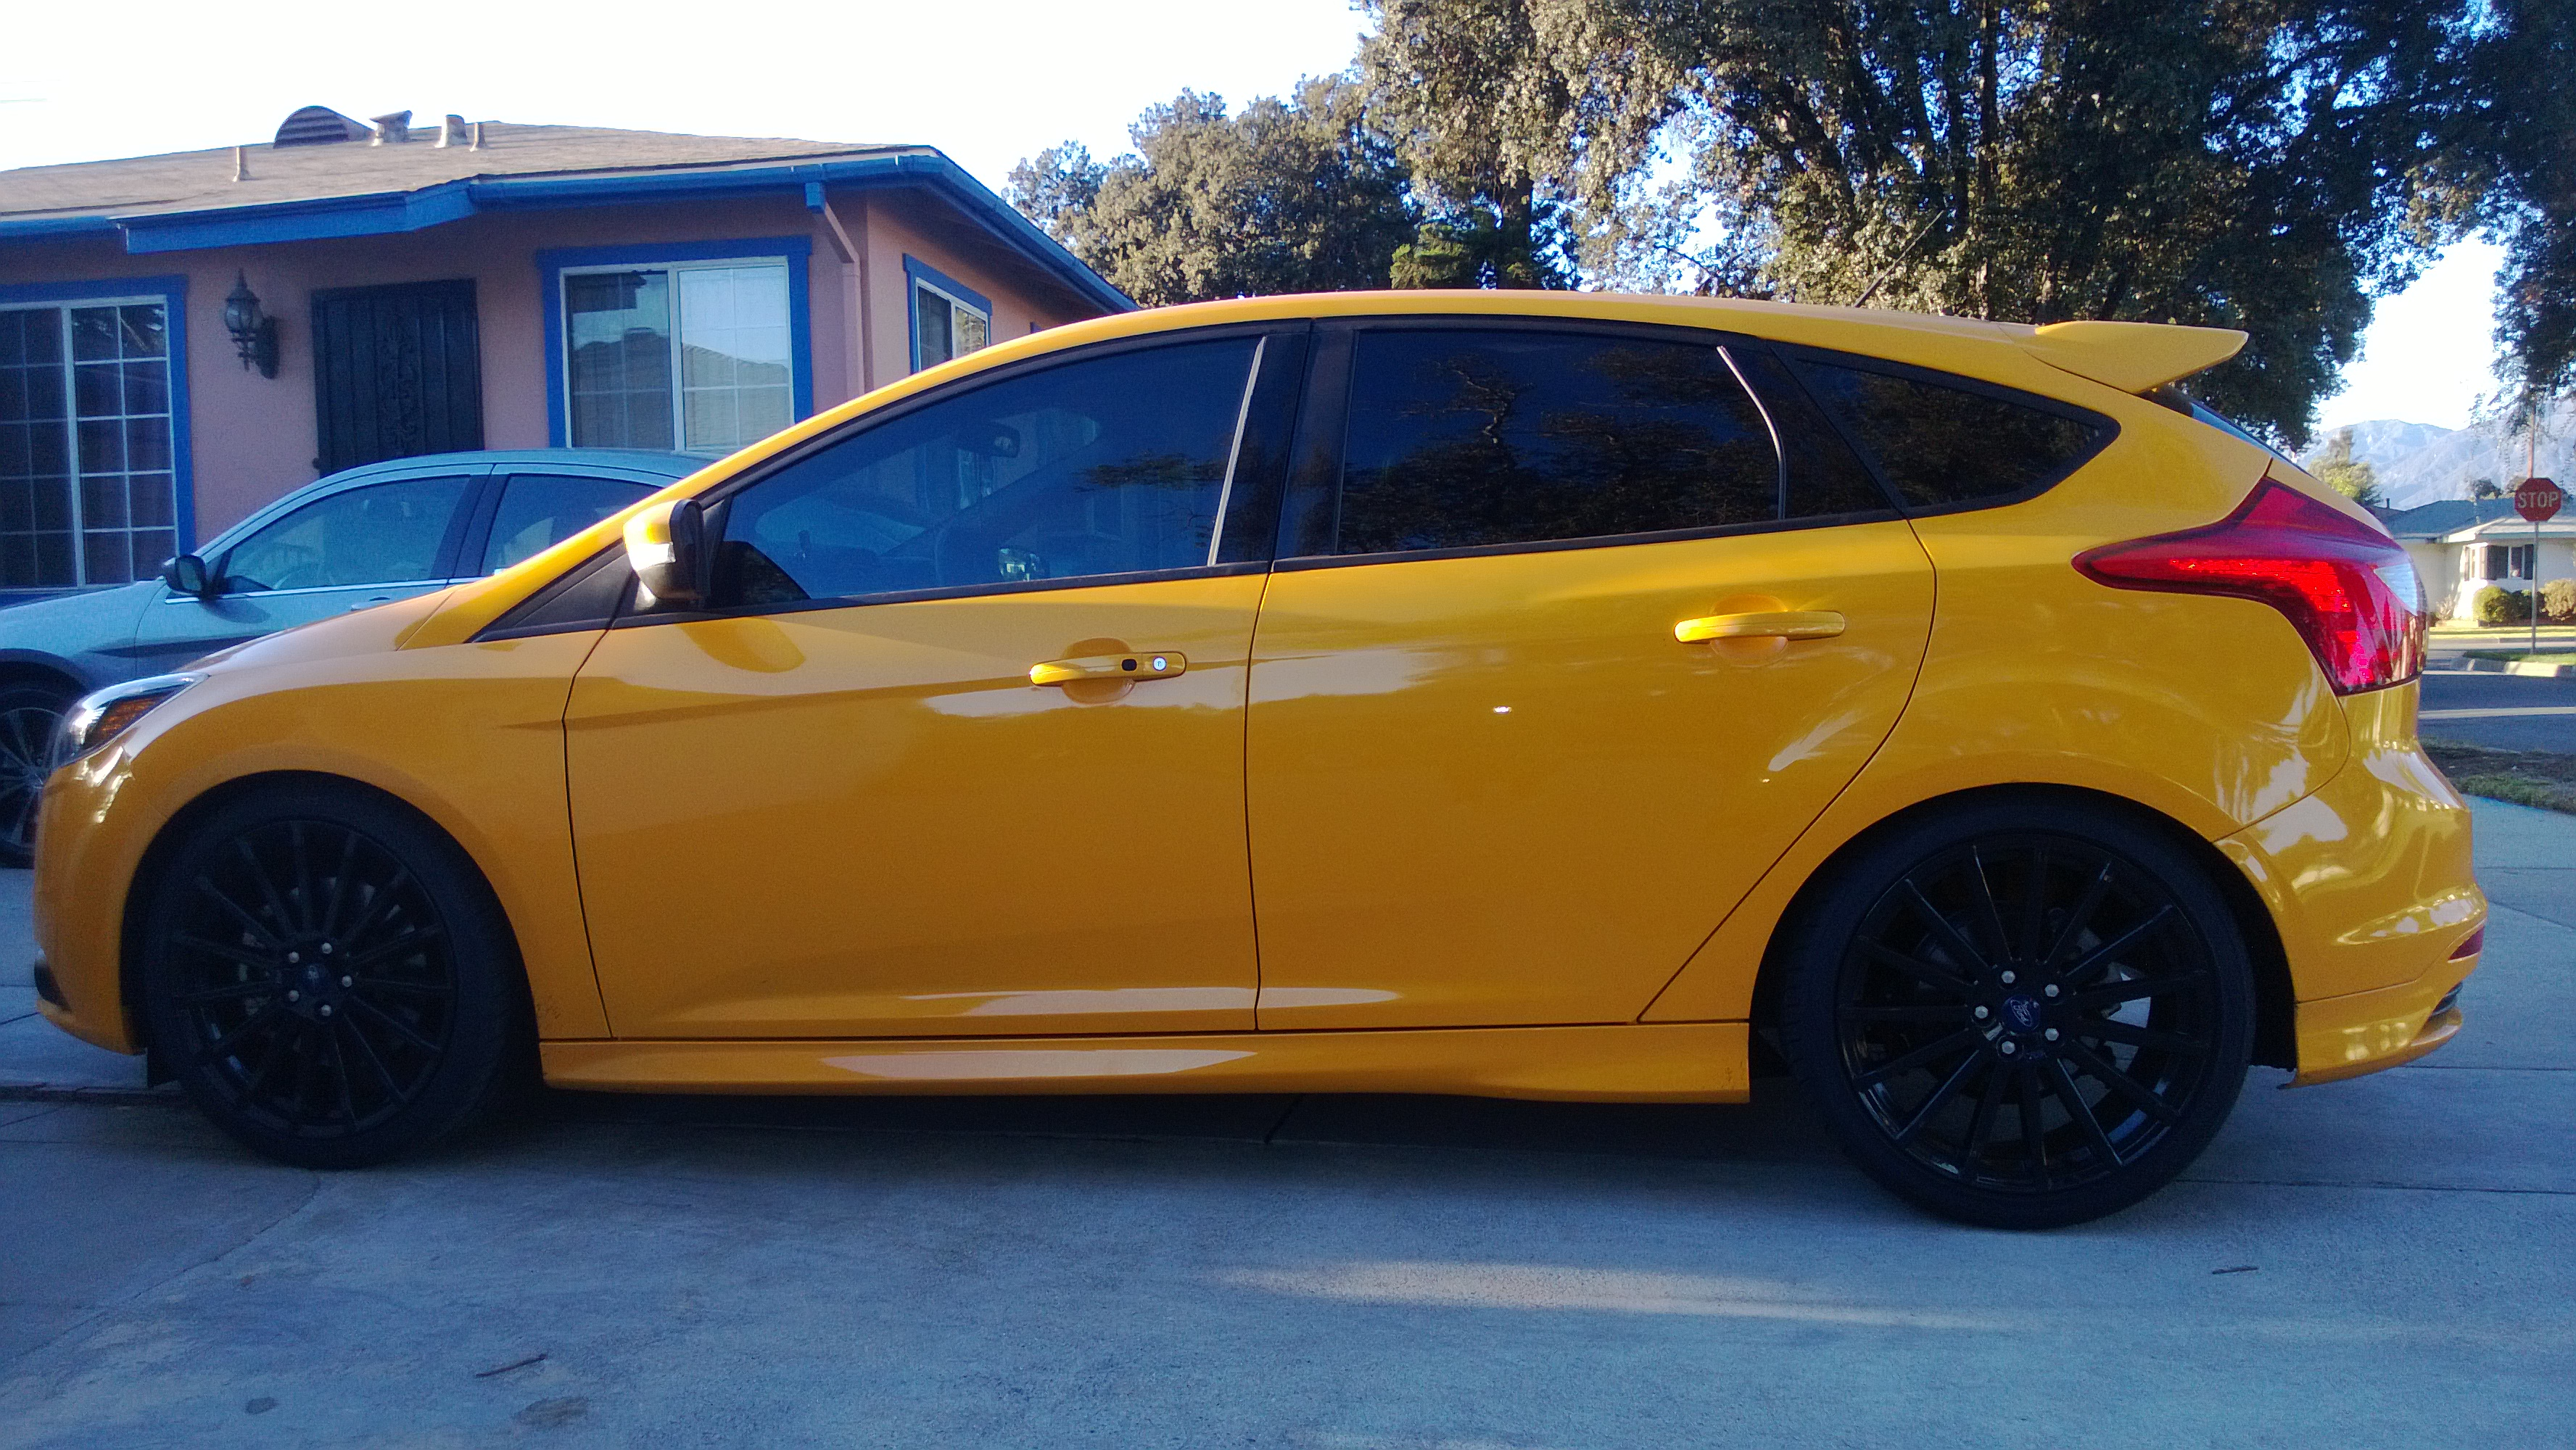 Ford racing focus rs wheels name wp 20130924 004 jpg views 31205 size 2 72